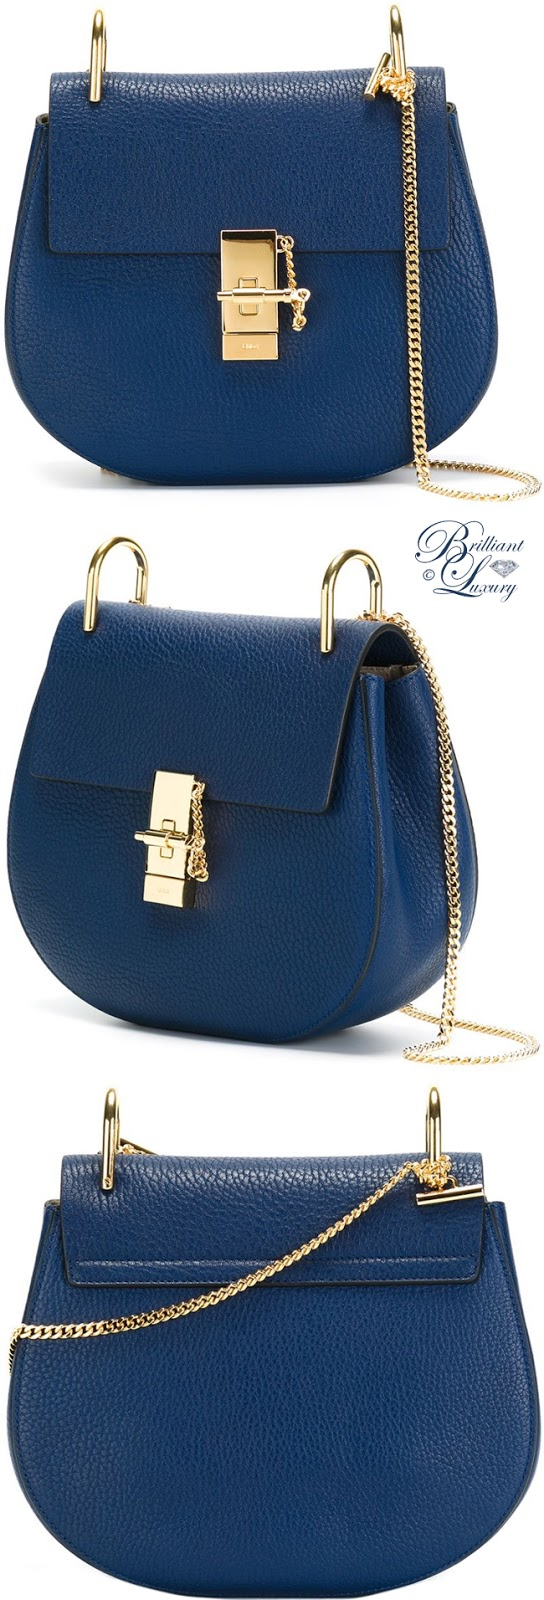 Brilliant Luxury ♦ Chloé Drew Shoulder Bag #blue